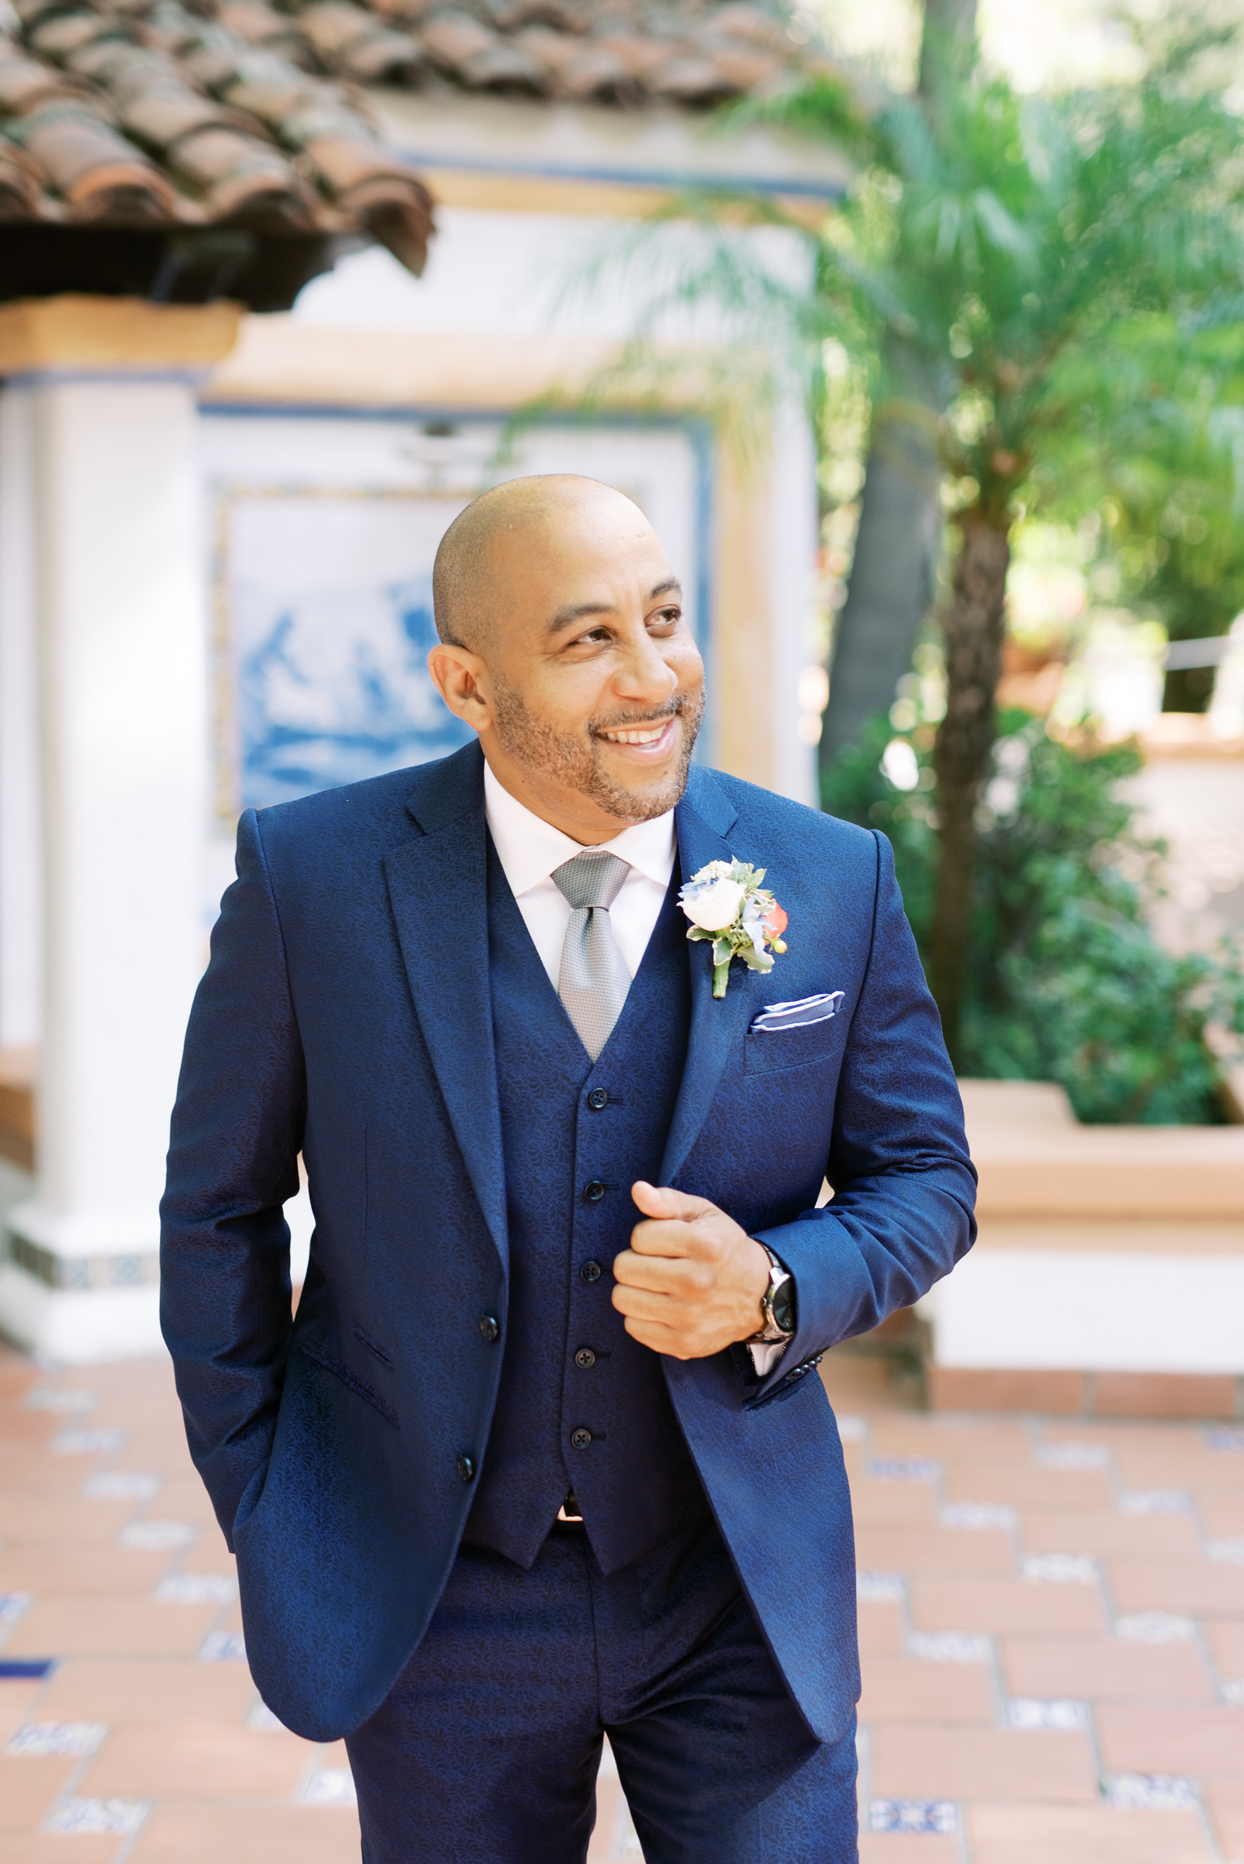 groom smiling wearing navy blue suit with silver tie